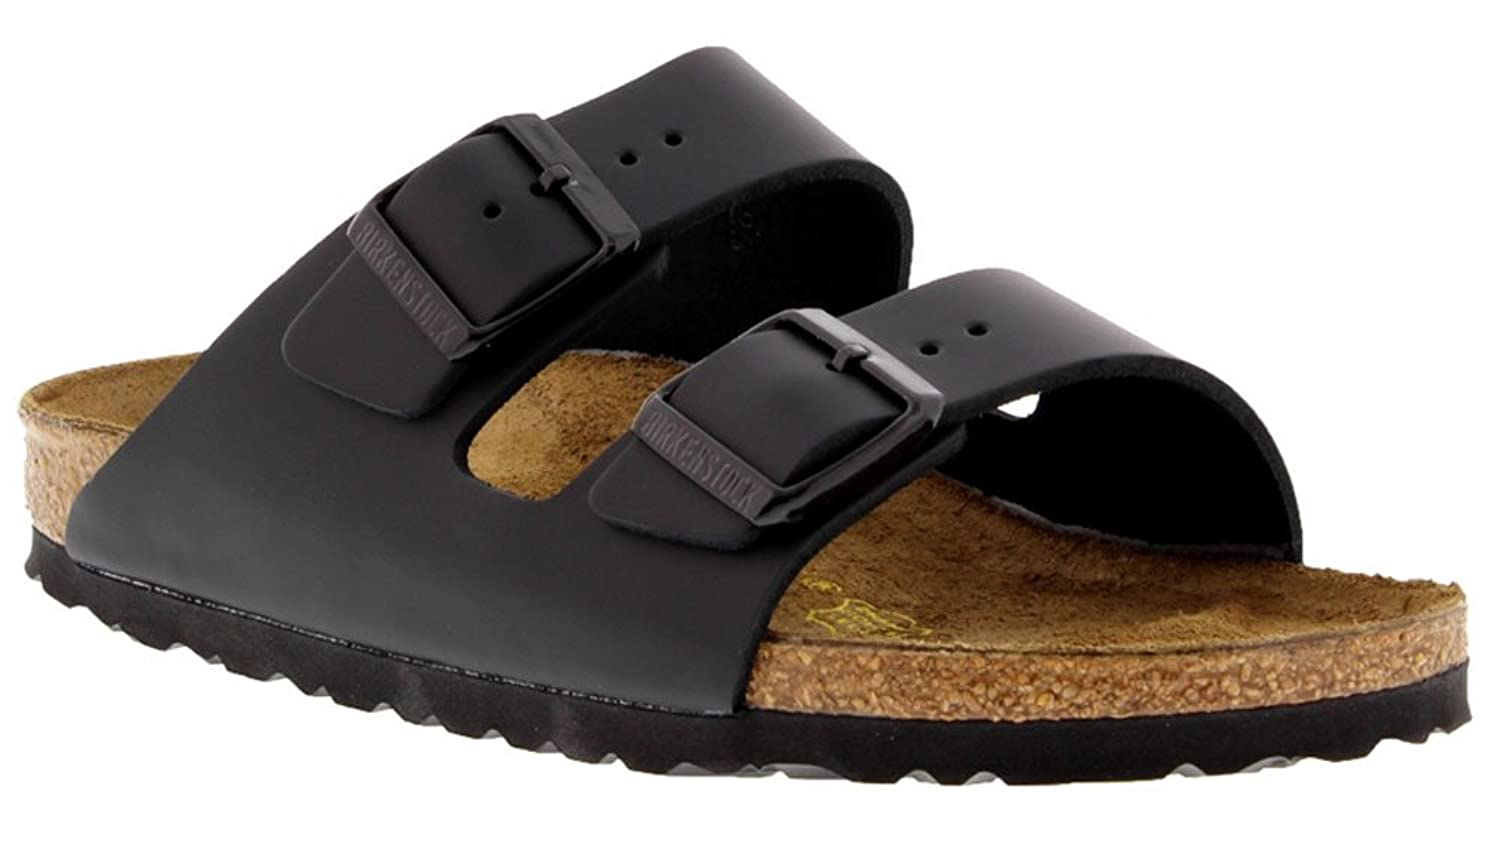 Arizona 2-Strap Sandal In 'Smooth Black Natural Leather' Unisex